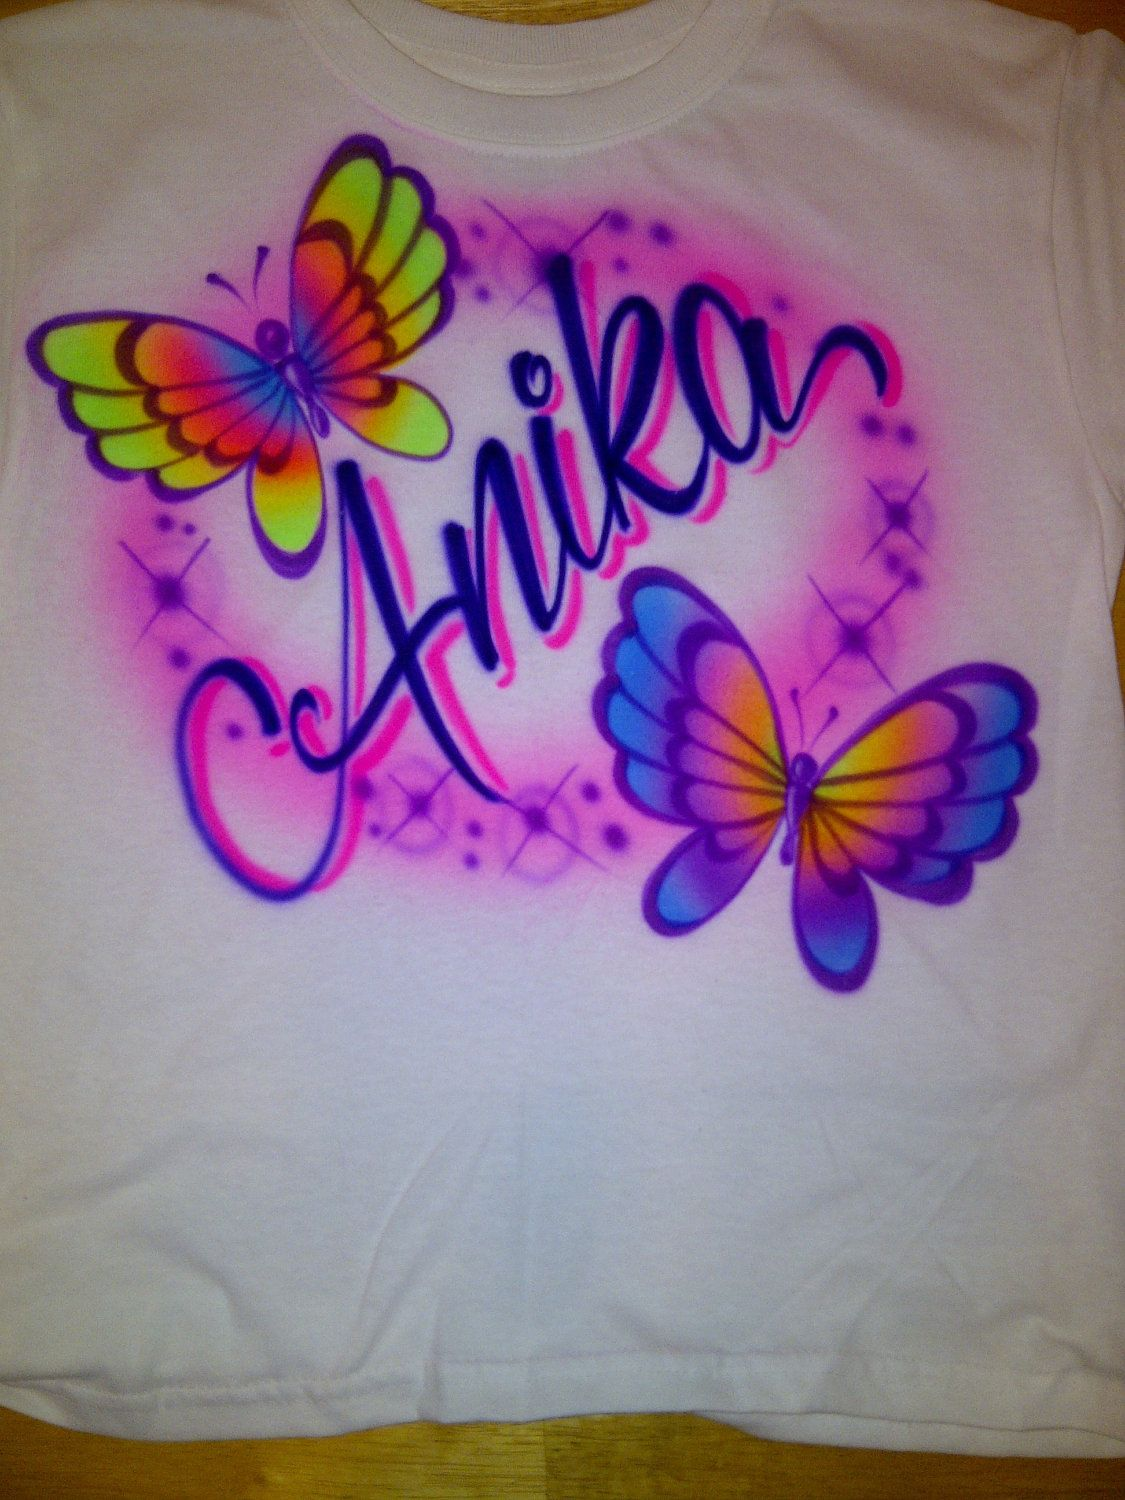 bca12f02 Airbrushed Personalized Name With Butterflies size S M L XL Y 2-4 6-8 10-12  14-16 Shirt. $14.49, via Etsy.